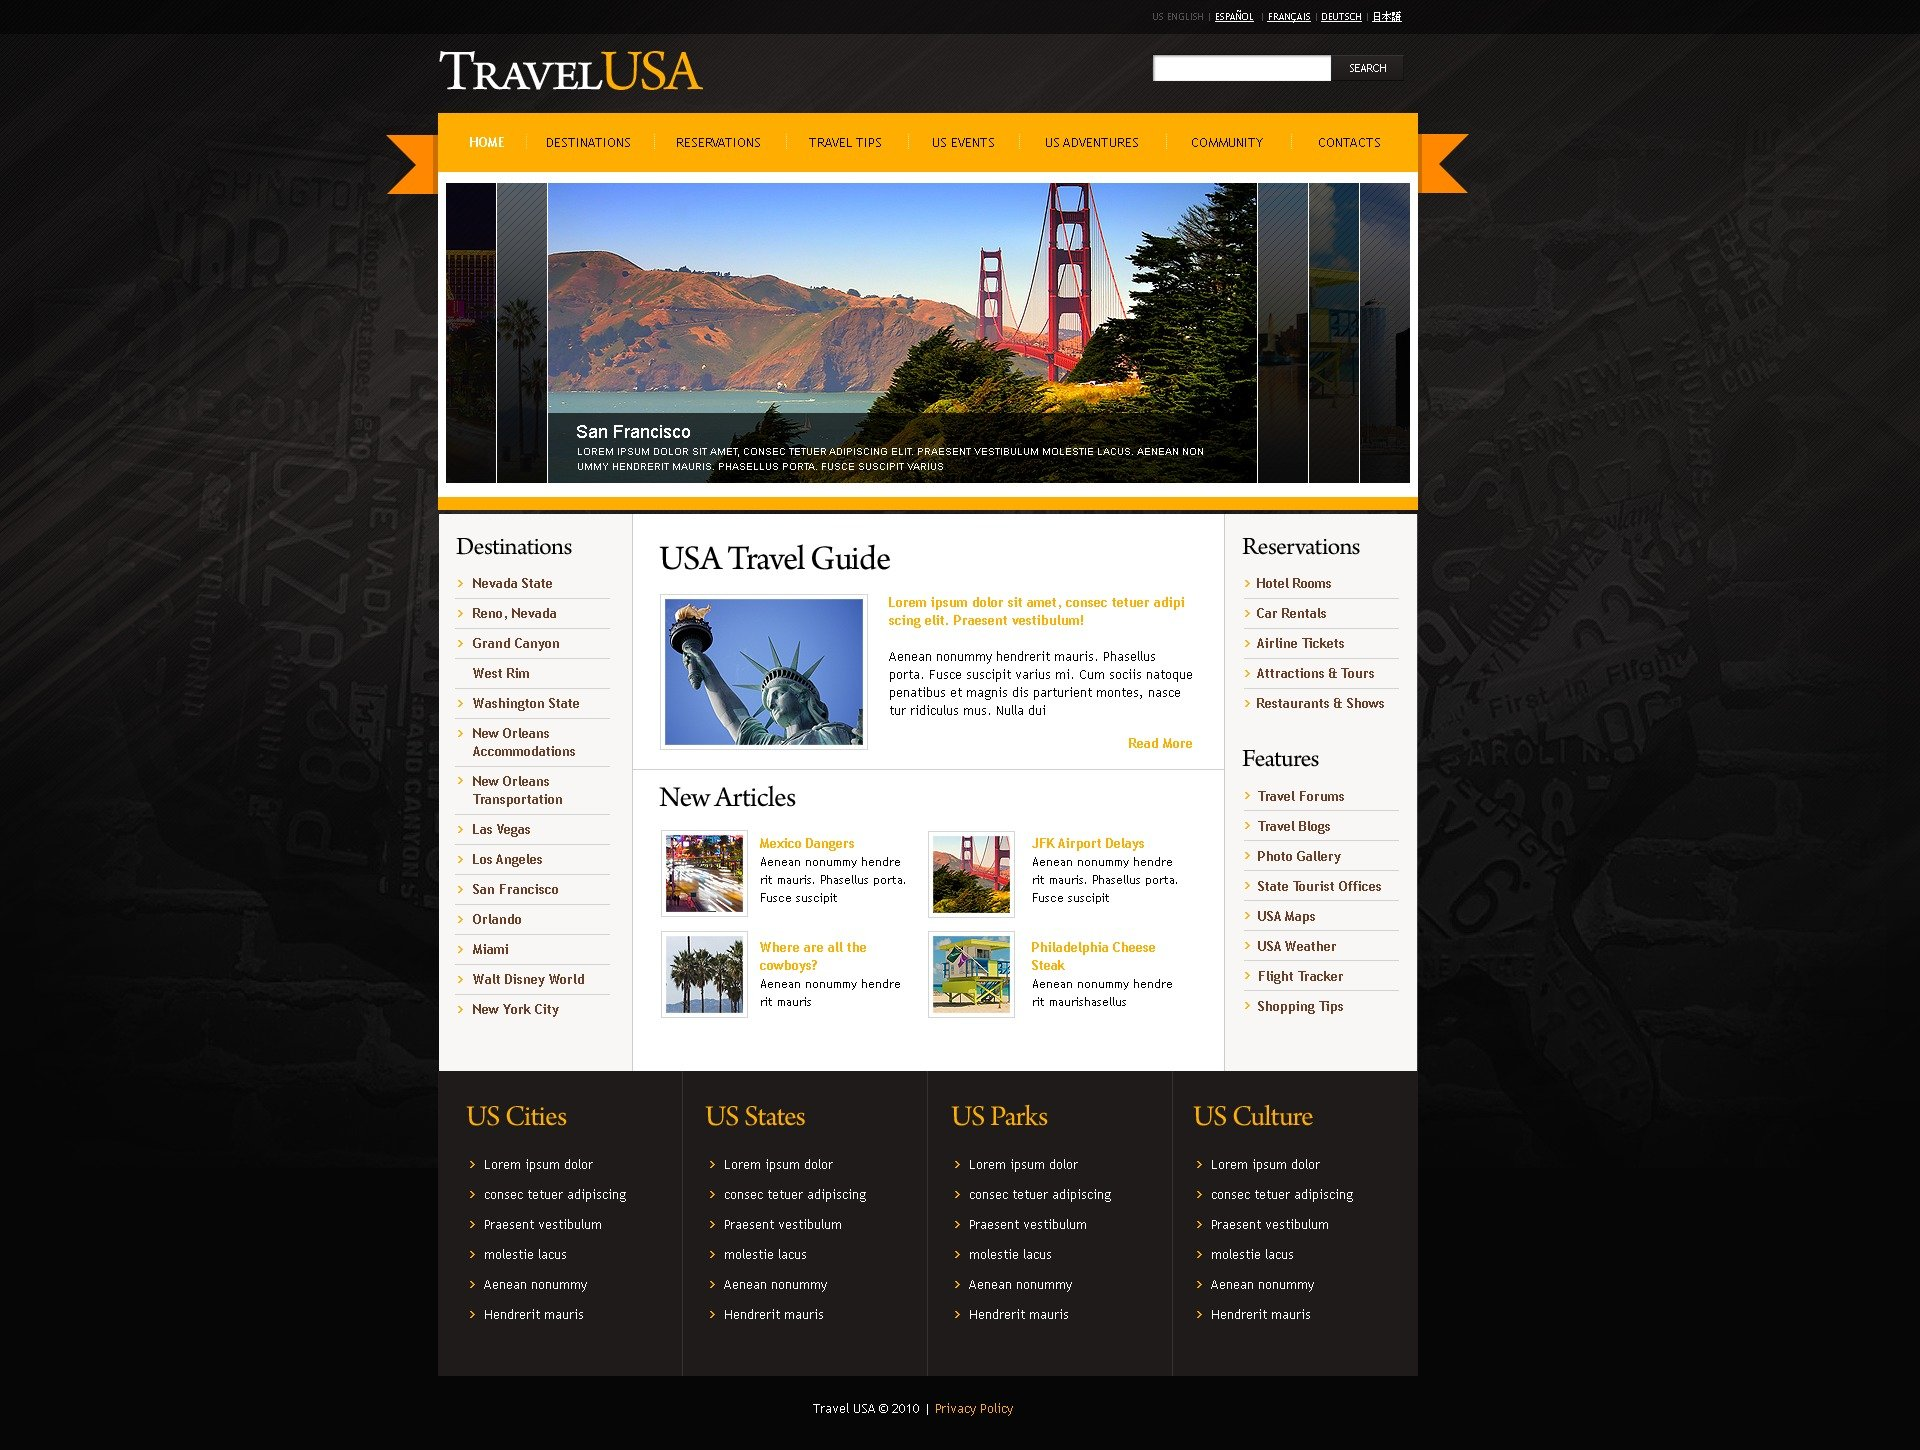 The Travel USA Agency Online Store PSD Design 54116, one of the best PSD templates of its kind (travel, most popular, wide, jquery), also known as travel USA agency online store PSD template, tourist PSD template, equipment PSD template, rucksack PSD template, knapsack PSD template, tent PSD template, mountaineering PSD template, mountain PSD template, climbing PSD template, Alpinism products PSD template, shopping cart PSD template, compass PSD template, Extreme Sports Fishing Water camping PSD template, reviews PSD template, children PSD template, world PSD template, navigation PSD template, ways PSD template, roads PSD template, food PSD template, new PSD template, models PSD template, travel PSD template, foot and related with travel USA agency online store, tourist, equipment, rucksack, knapsack, tent, mountaineering, mountain, climbing, Alpinism products, shopping cart, compass, Extreme Sports Fishing Water camping, reviews, children, world, navigation, ways, roads, food, new, models, travel, foot, etc.